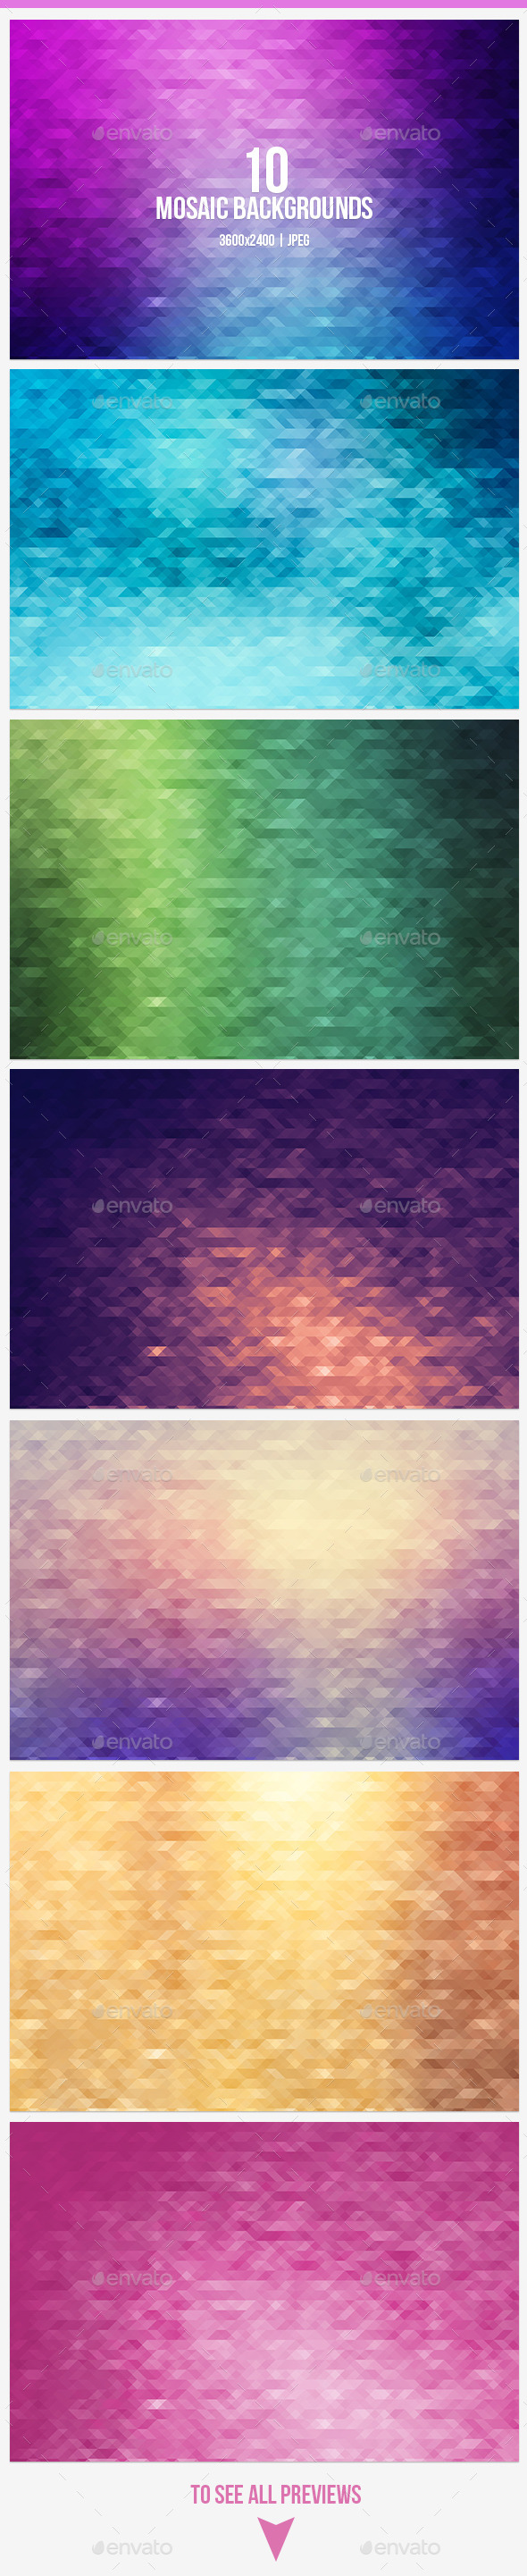 GraphicRiver Mosaic Backgrounds 9383440